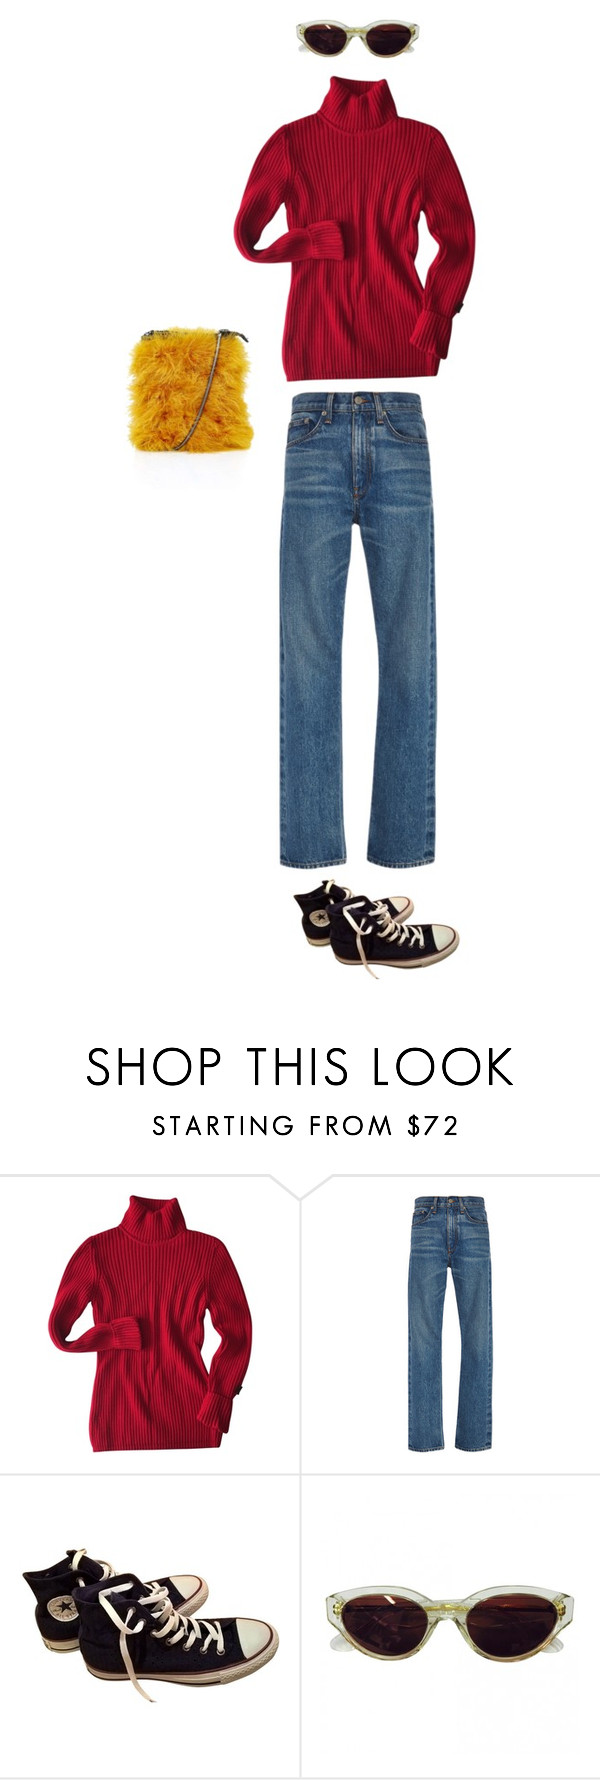 """""""Untitled #7015"""" by dreamer-in-paris ❤ liked on Polyvore featuring Bogner, Brock Collection, Converse, RetroSuperFuture and Topshop"""